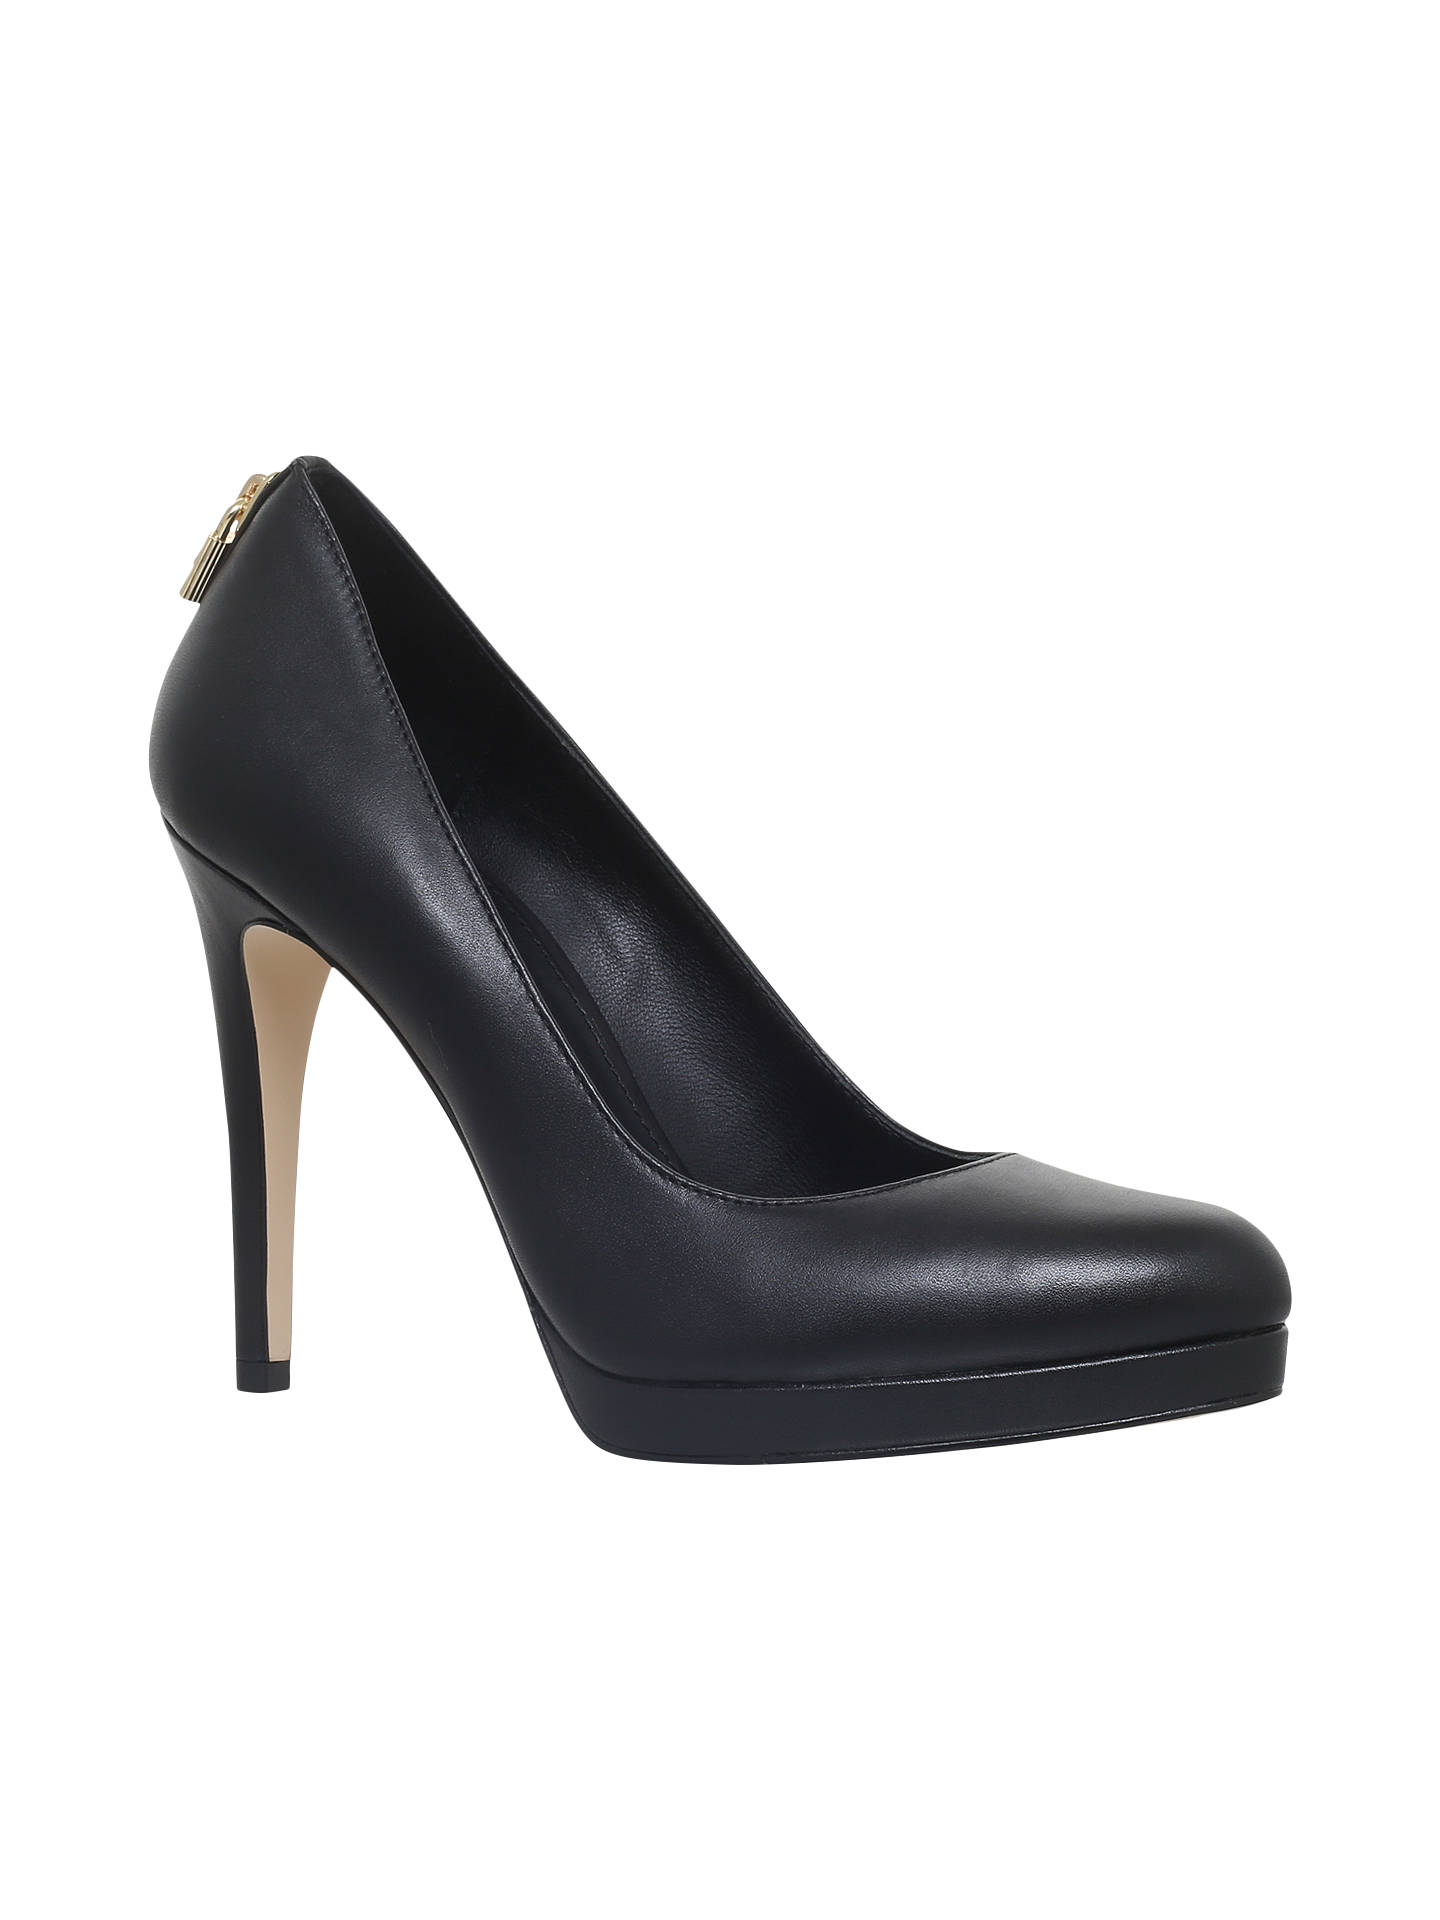 eec20d0ecb Buy MICHAEL Michael Kors Antoinette Stiletto Heeled Court Shoes, Black  Leather, 3 Online at ...